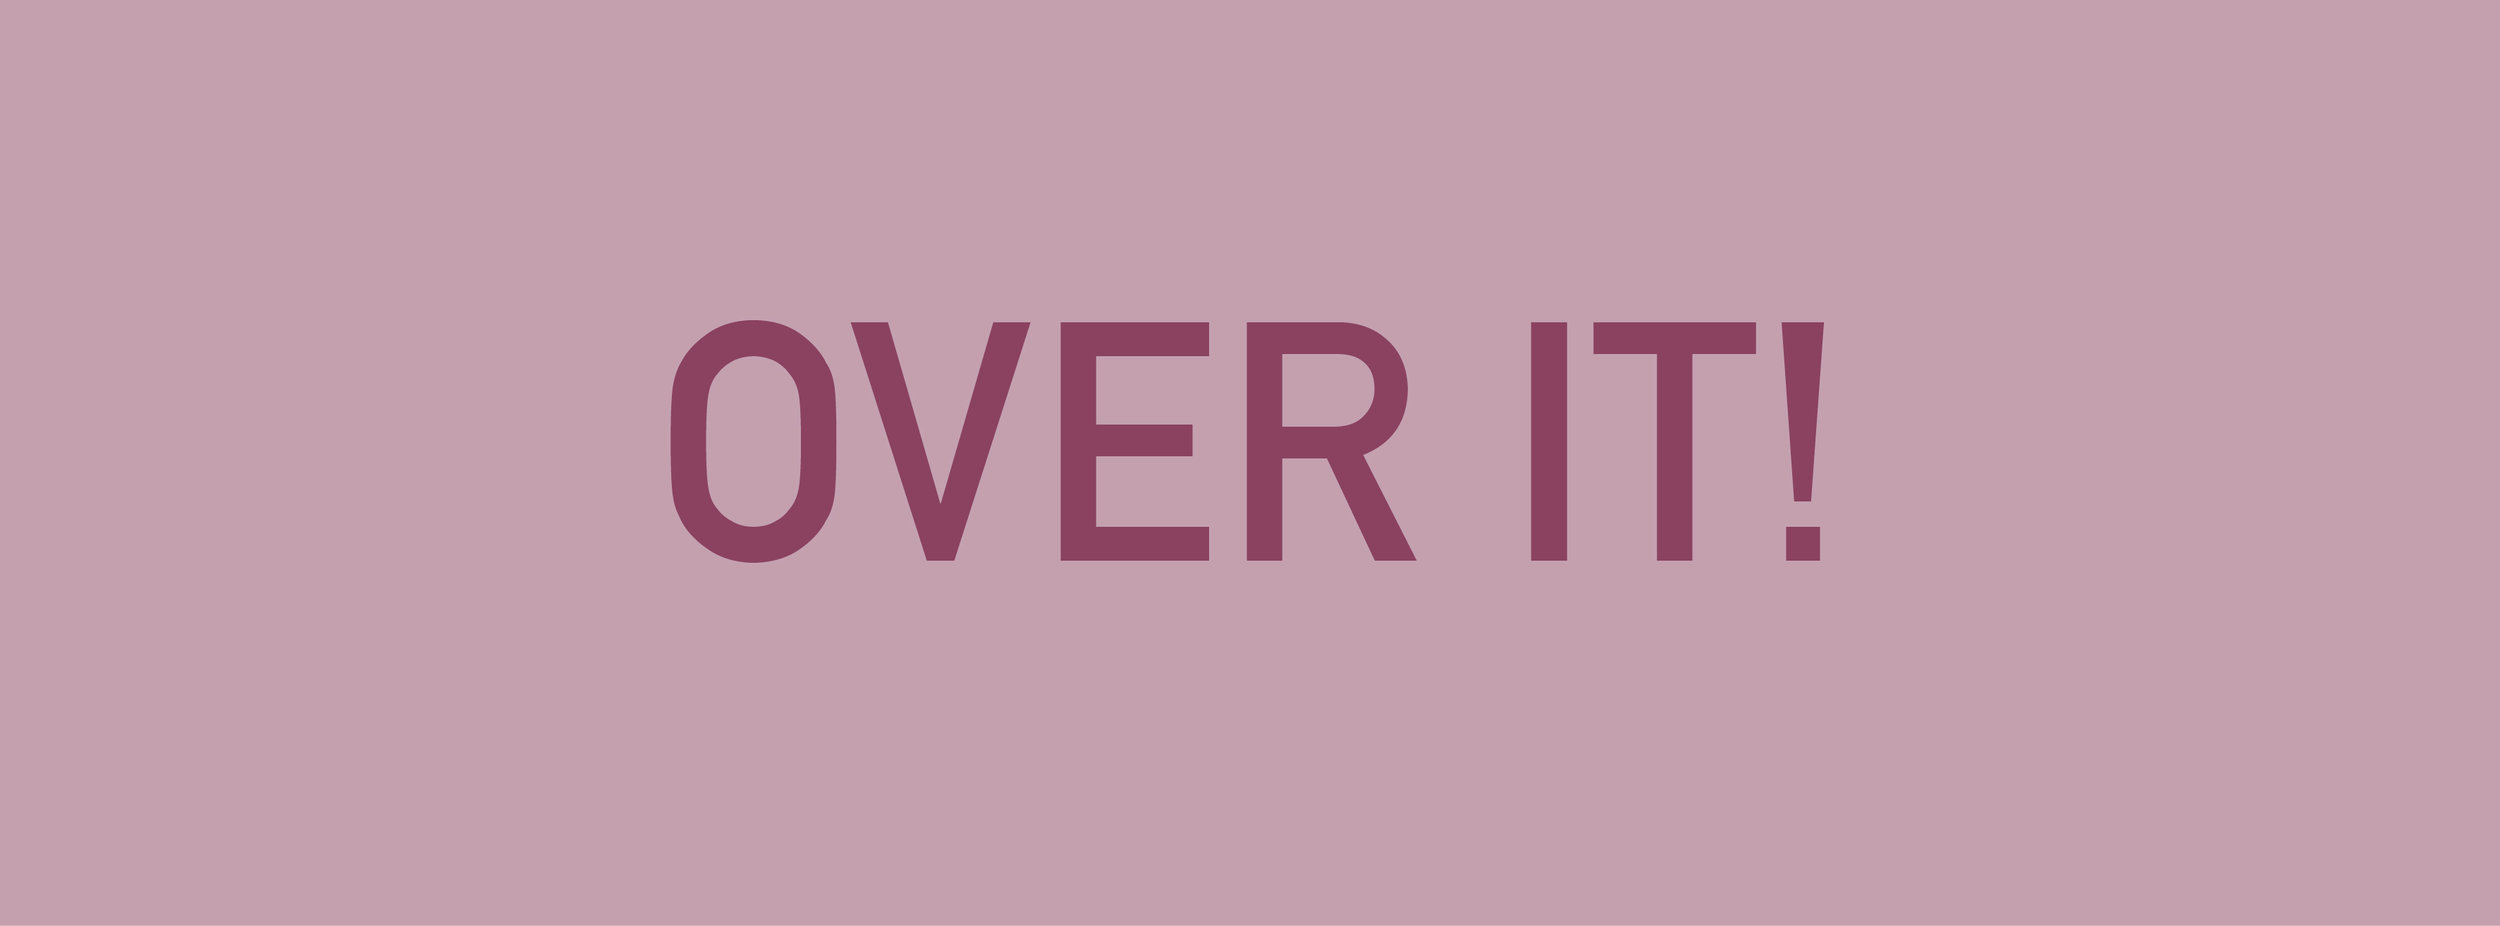 over it social kit-06.jpg